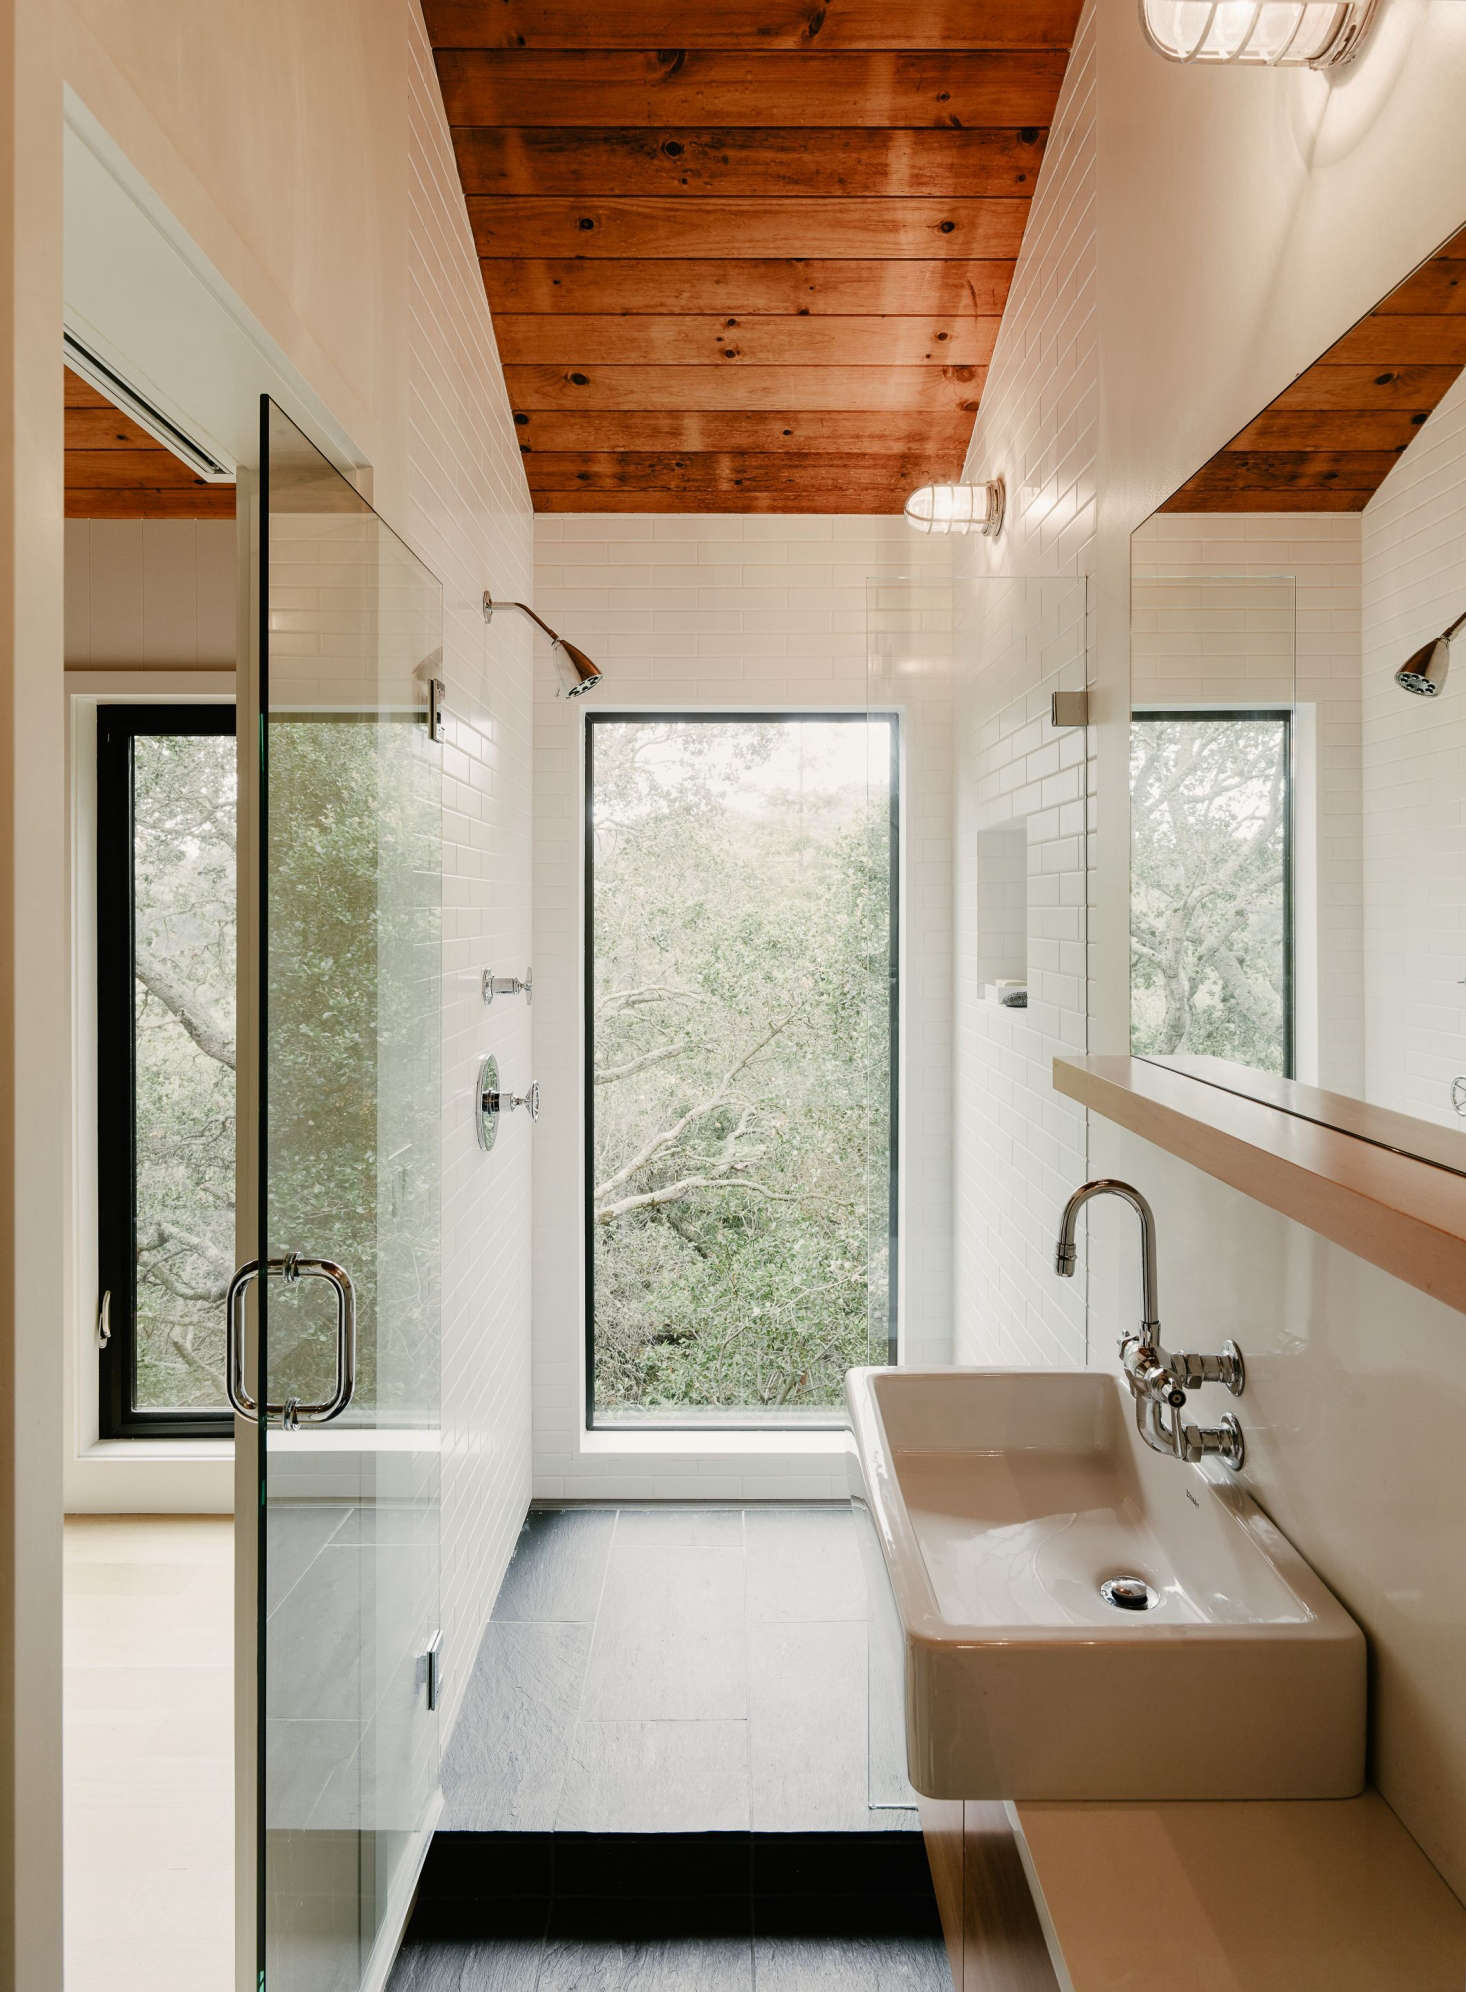 A Walk In Shower In California Idyll: A Pitched Roof Midcentury Revival With